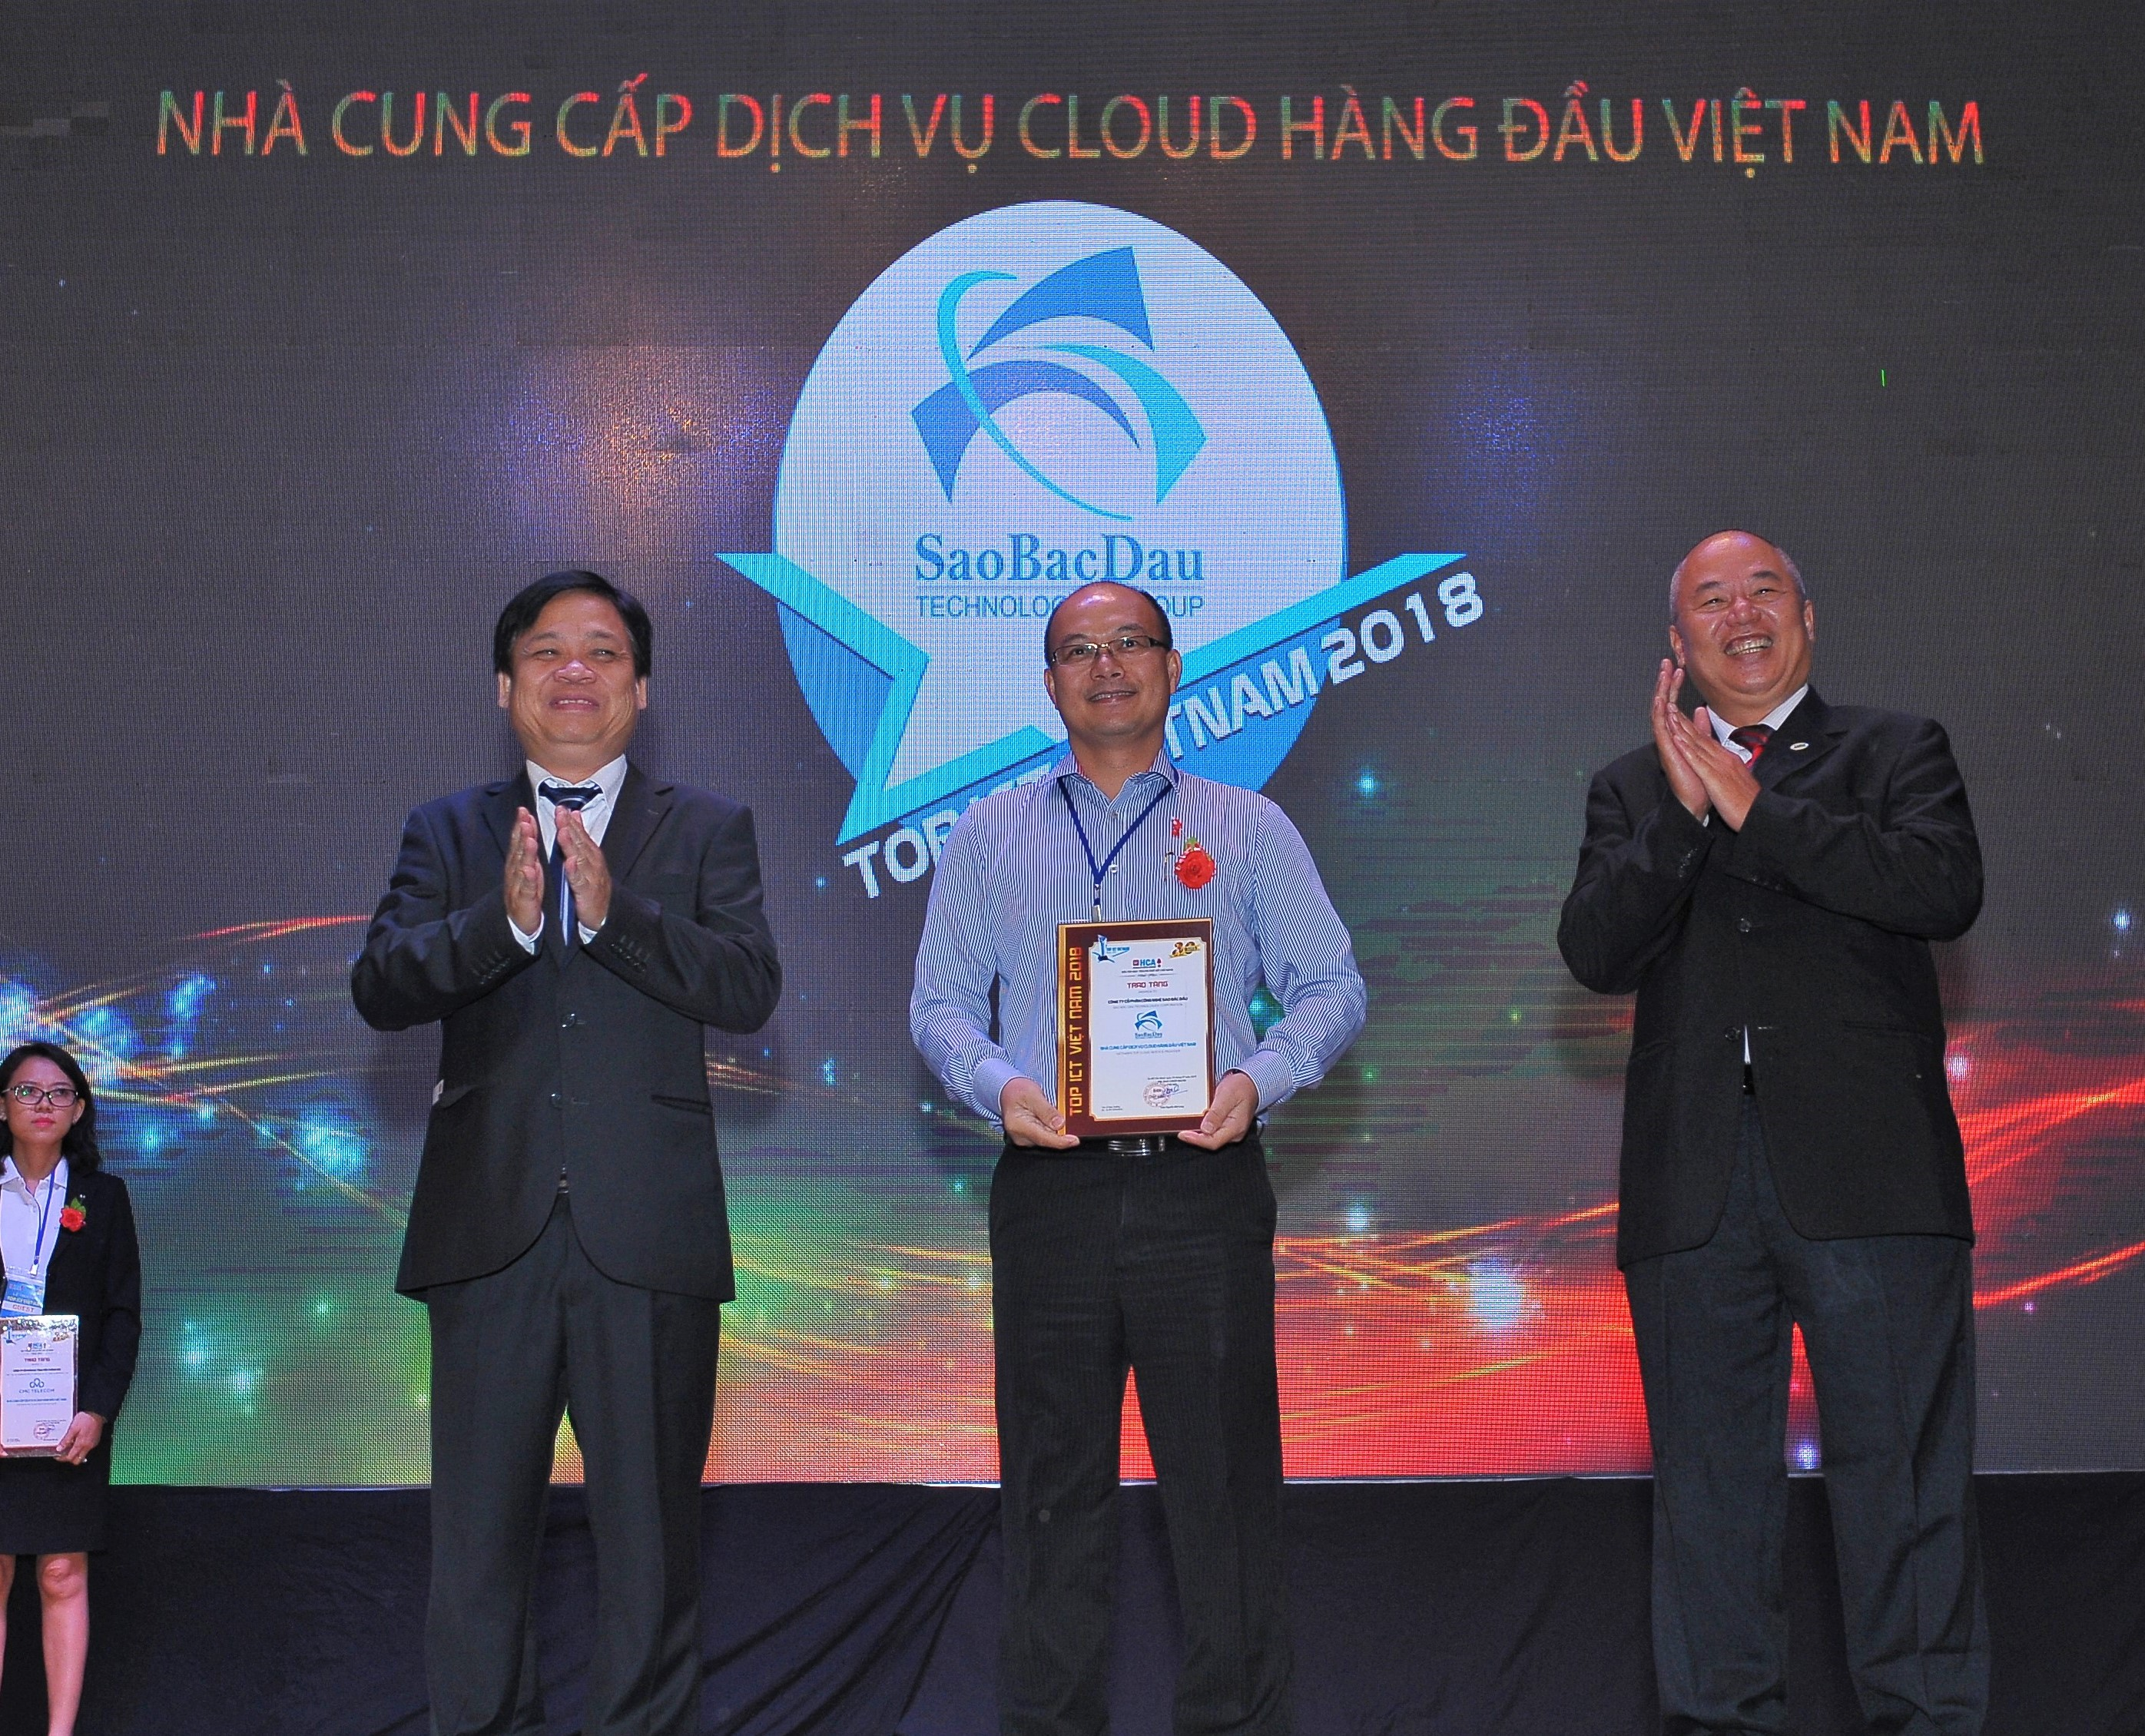 Sao Bac Dau Reaches Top ICT And Attends VIO In 2018